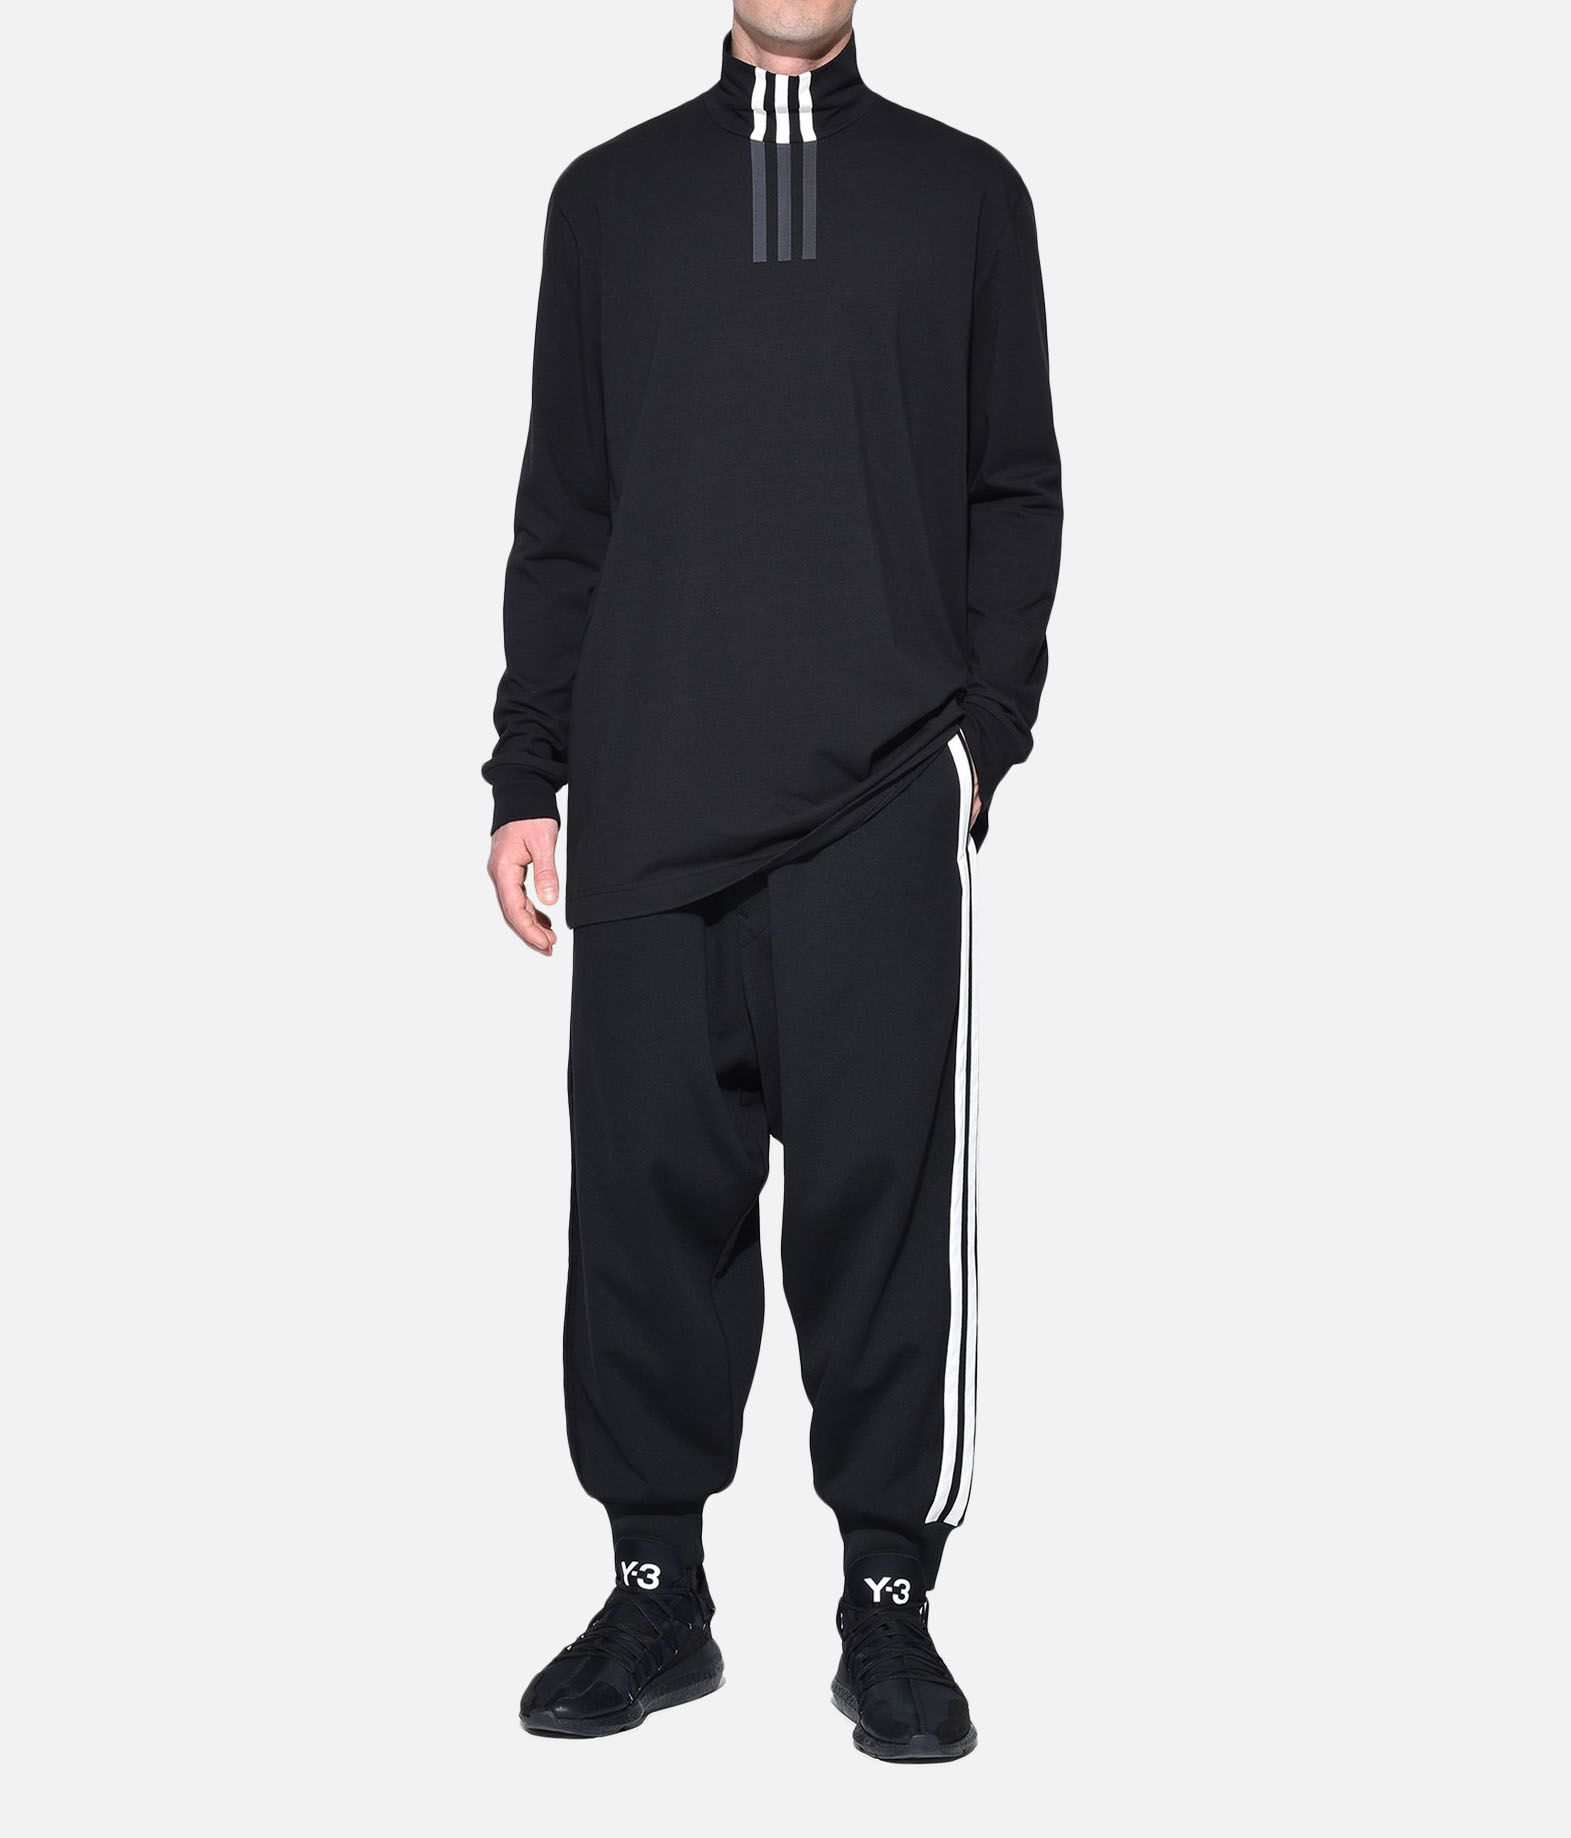 Y-3 Y-3 3-Stripes High Neck Tee Long sleeve t-shirt Man a